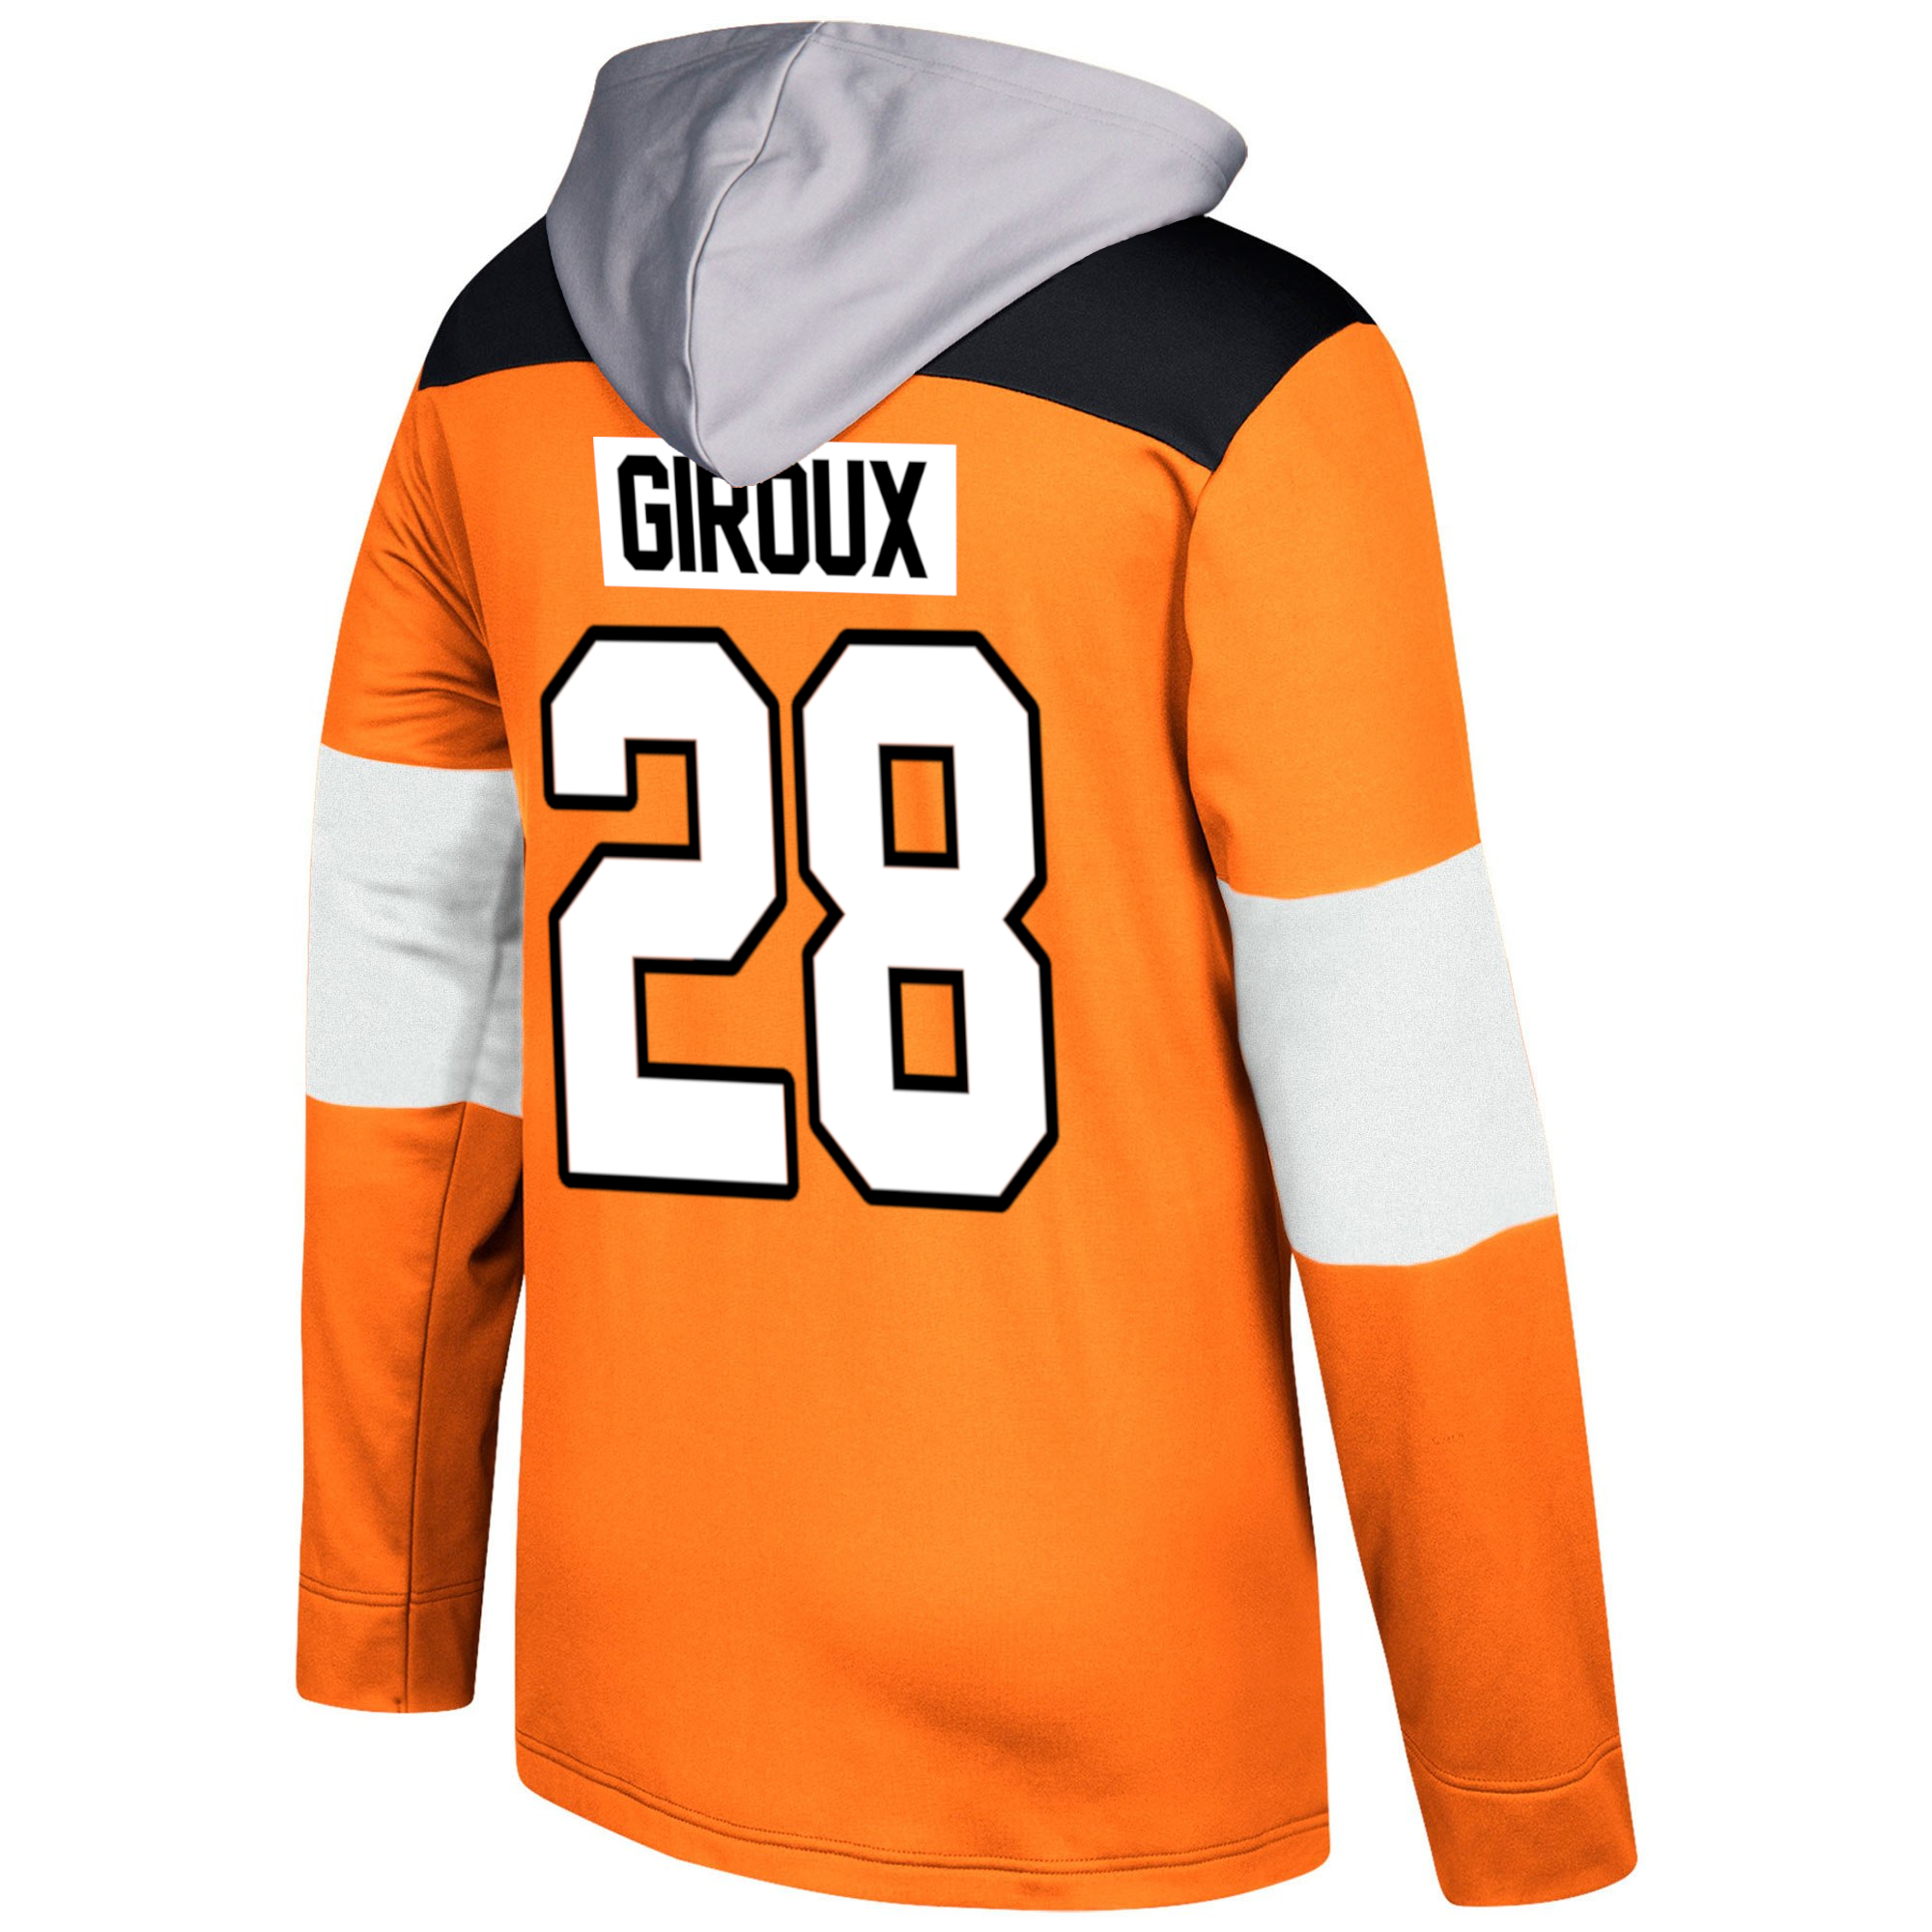 8a5098f58 Philadelphia Flyers Men s 2018 Platinum Jersey Hoodie by Adidas - Wells  Fargo Center - Official Online Store